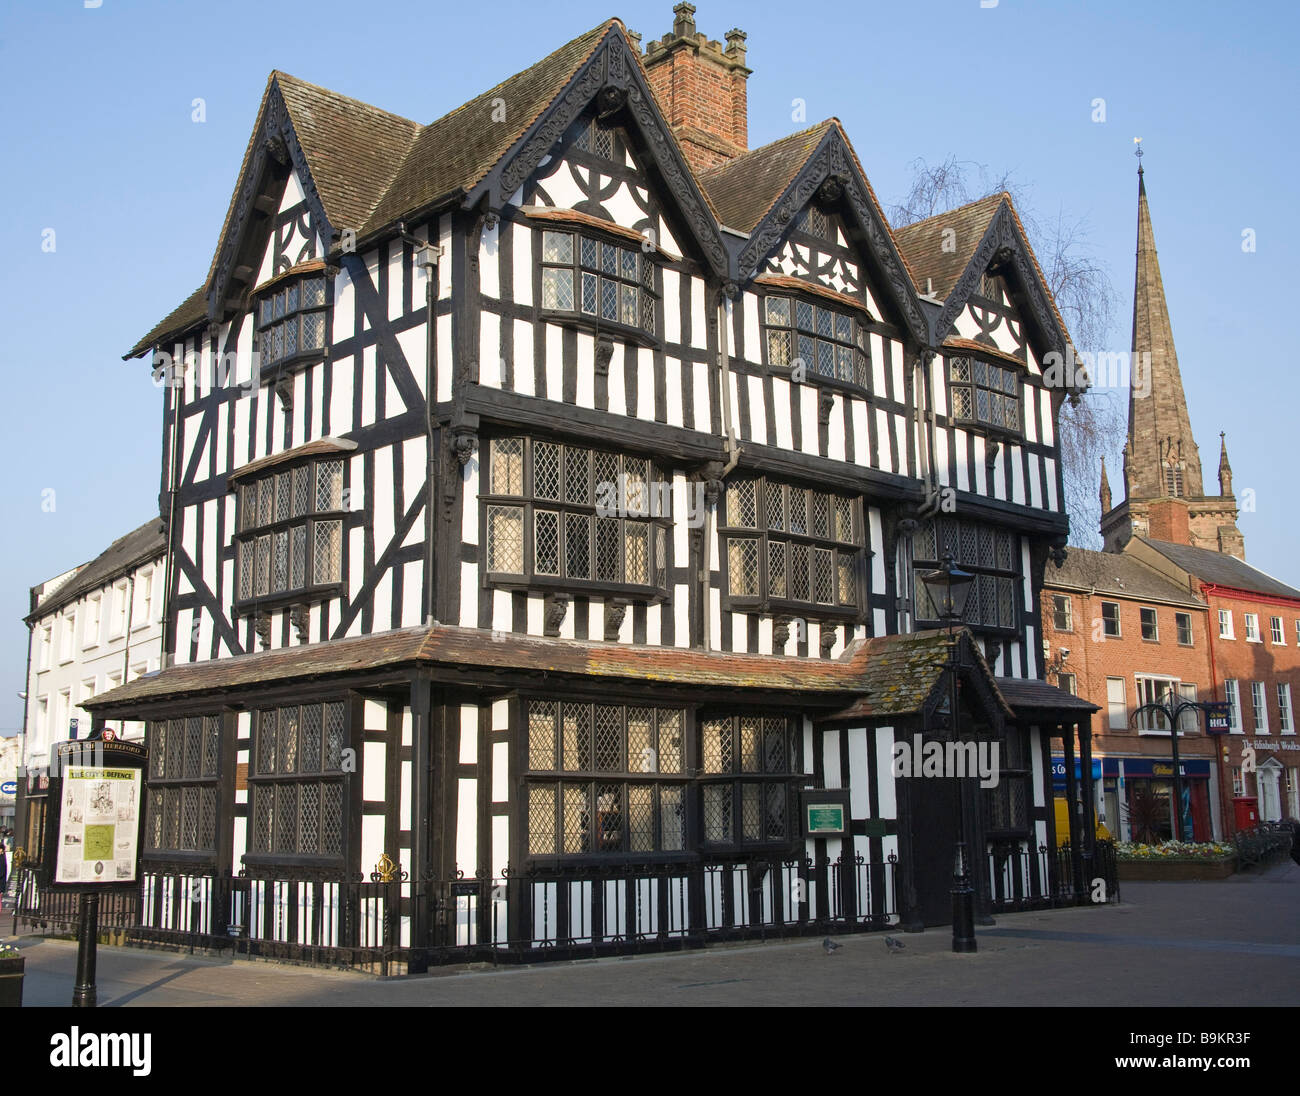 Old House Uk Amazing Interior Design Ideas Wiring Colours Hereford England March The Museum Built 1621 A Fine Rh Alamy Com Home